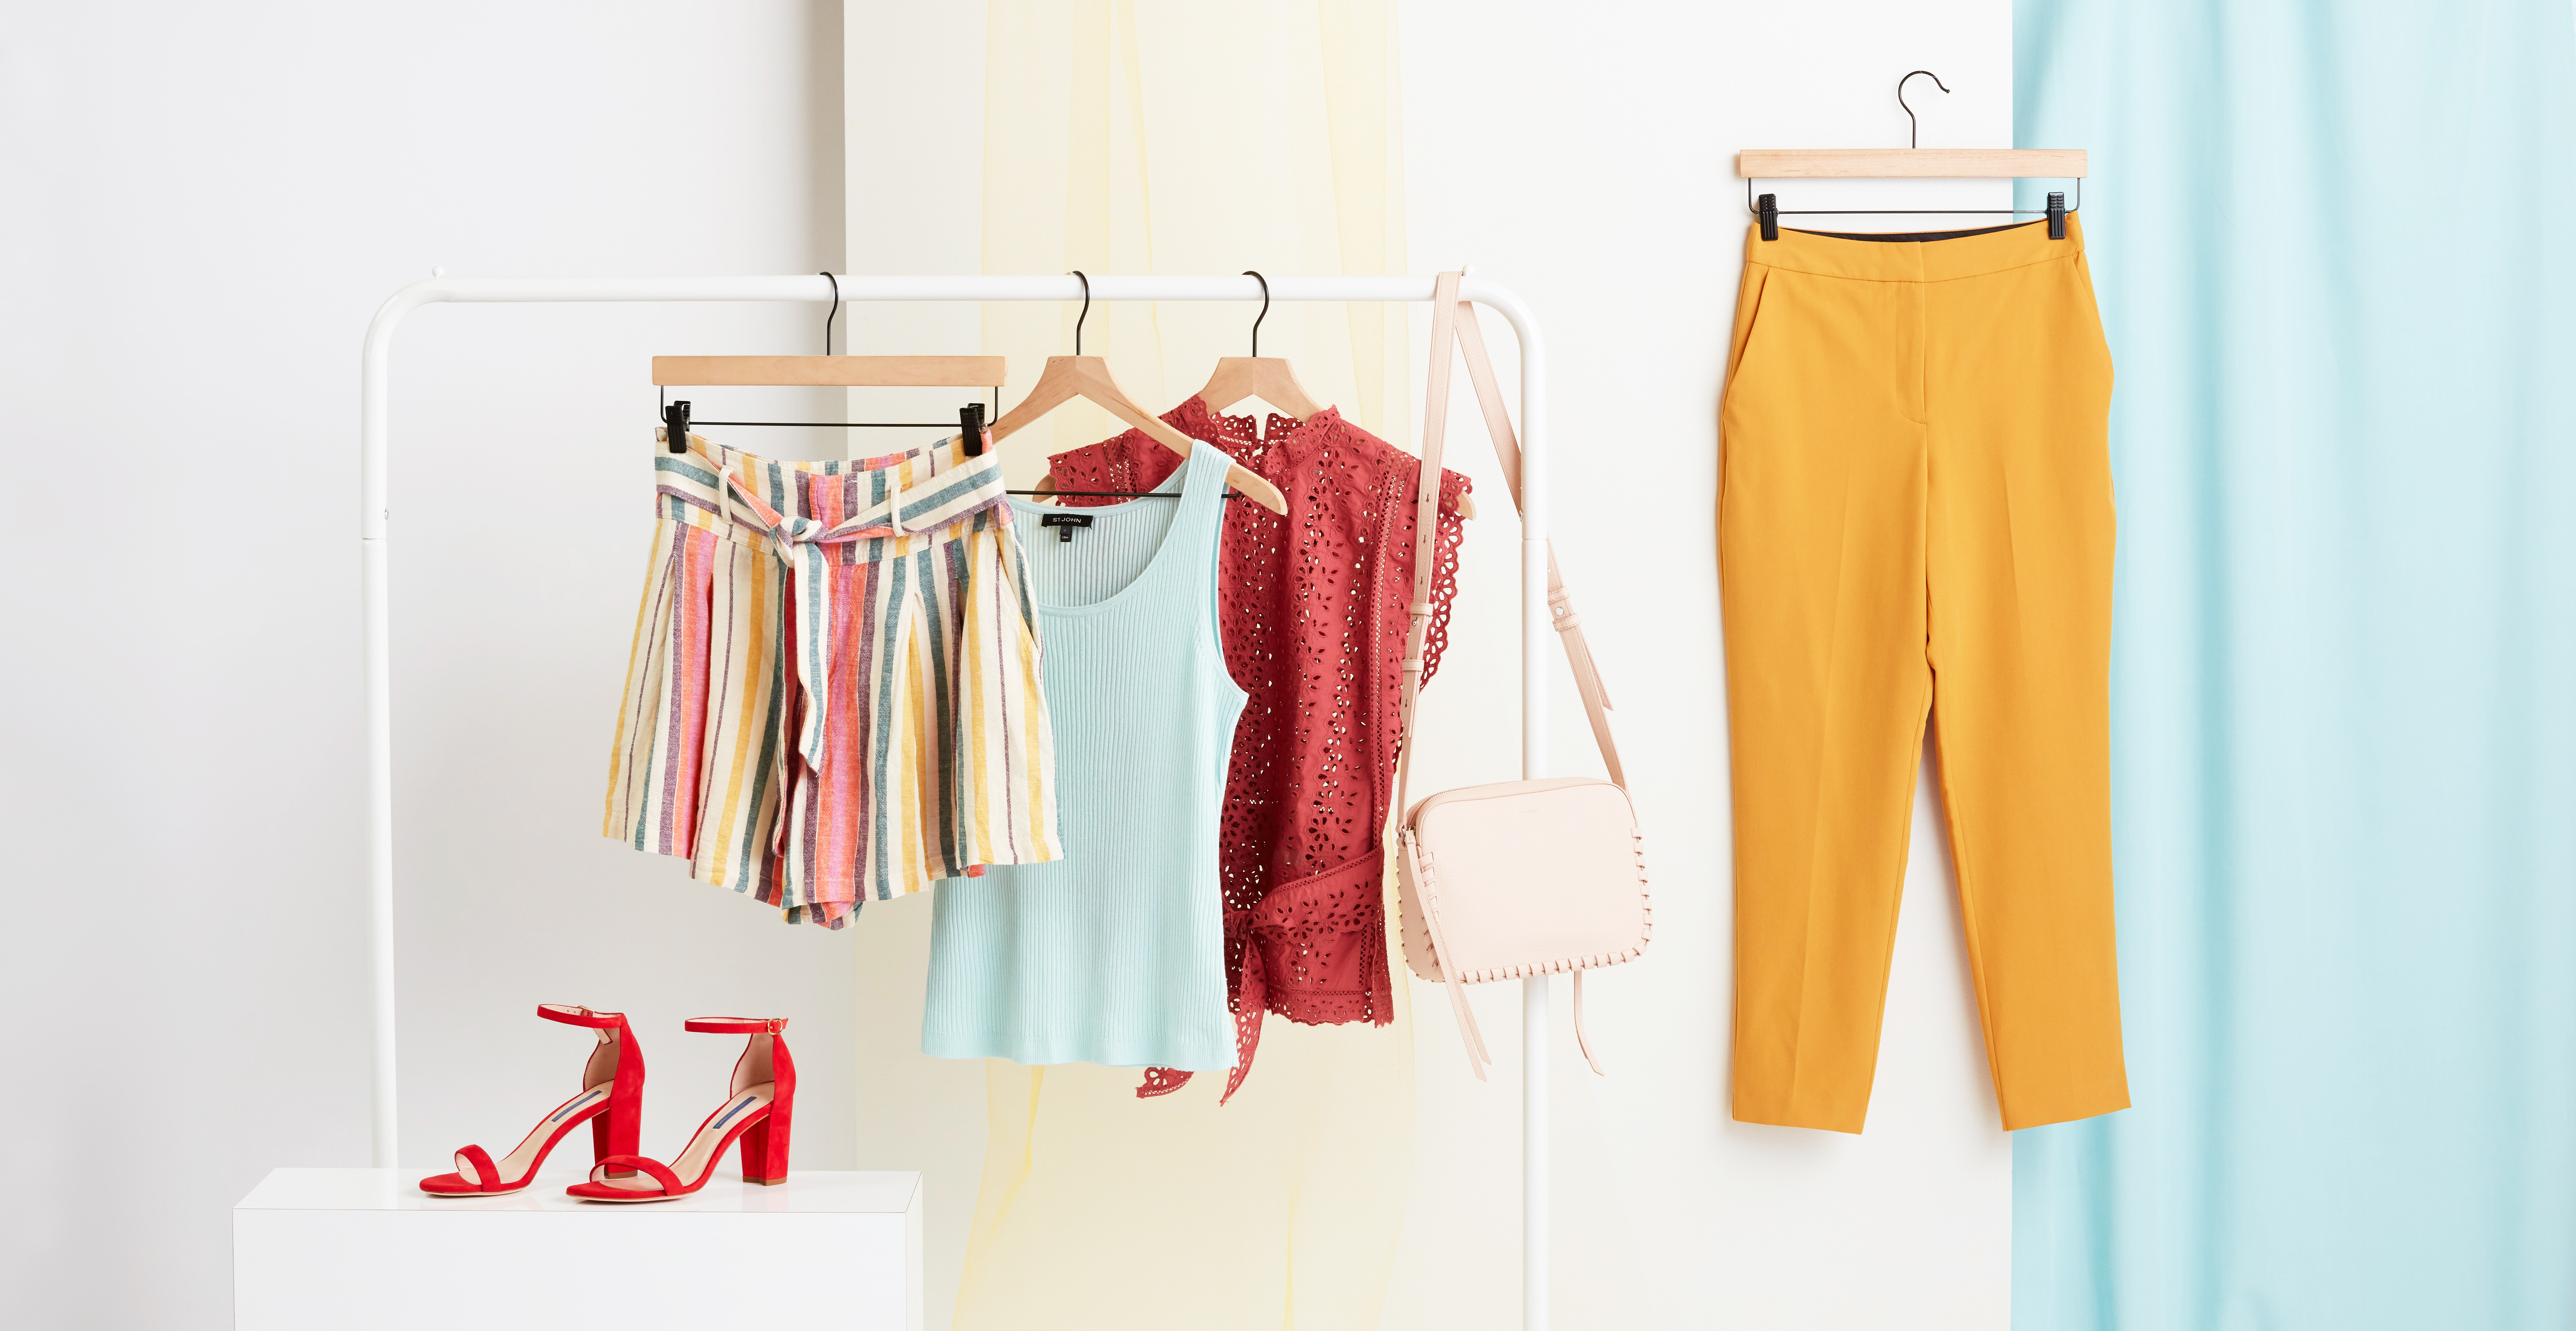 5 Summer Essentials for Every Woman's Wardrobe